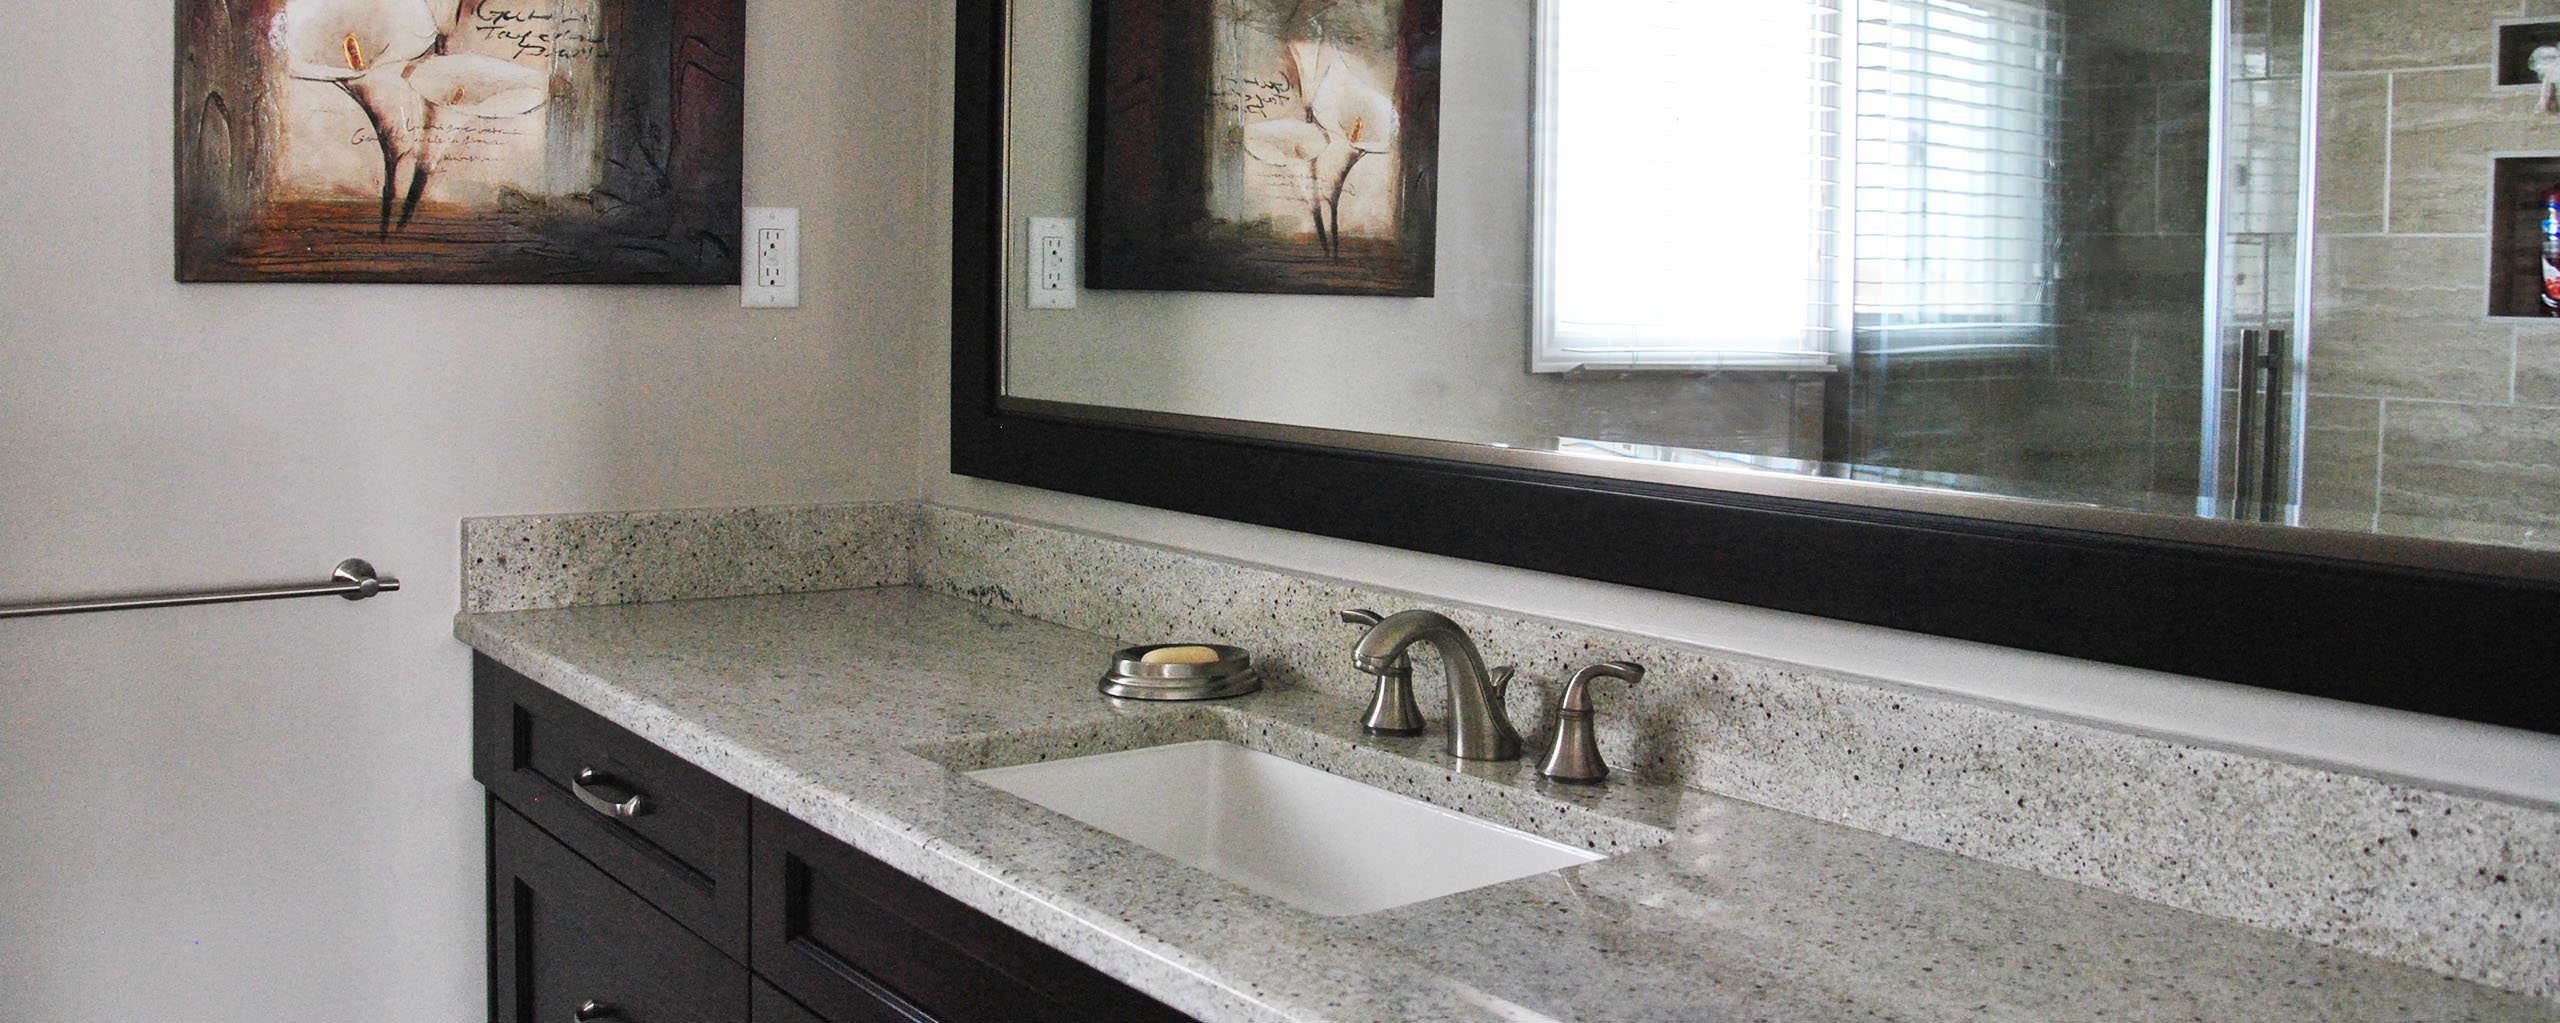 Kashmir White Granite Kitchen Kashmir White Granite Countertop